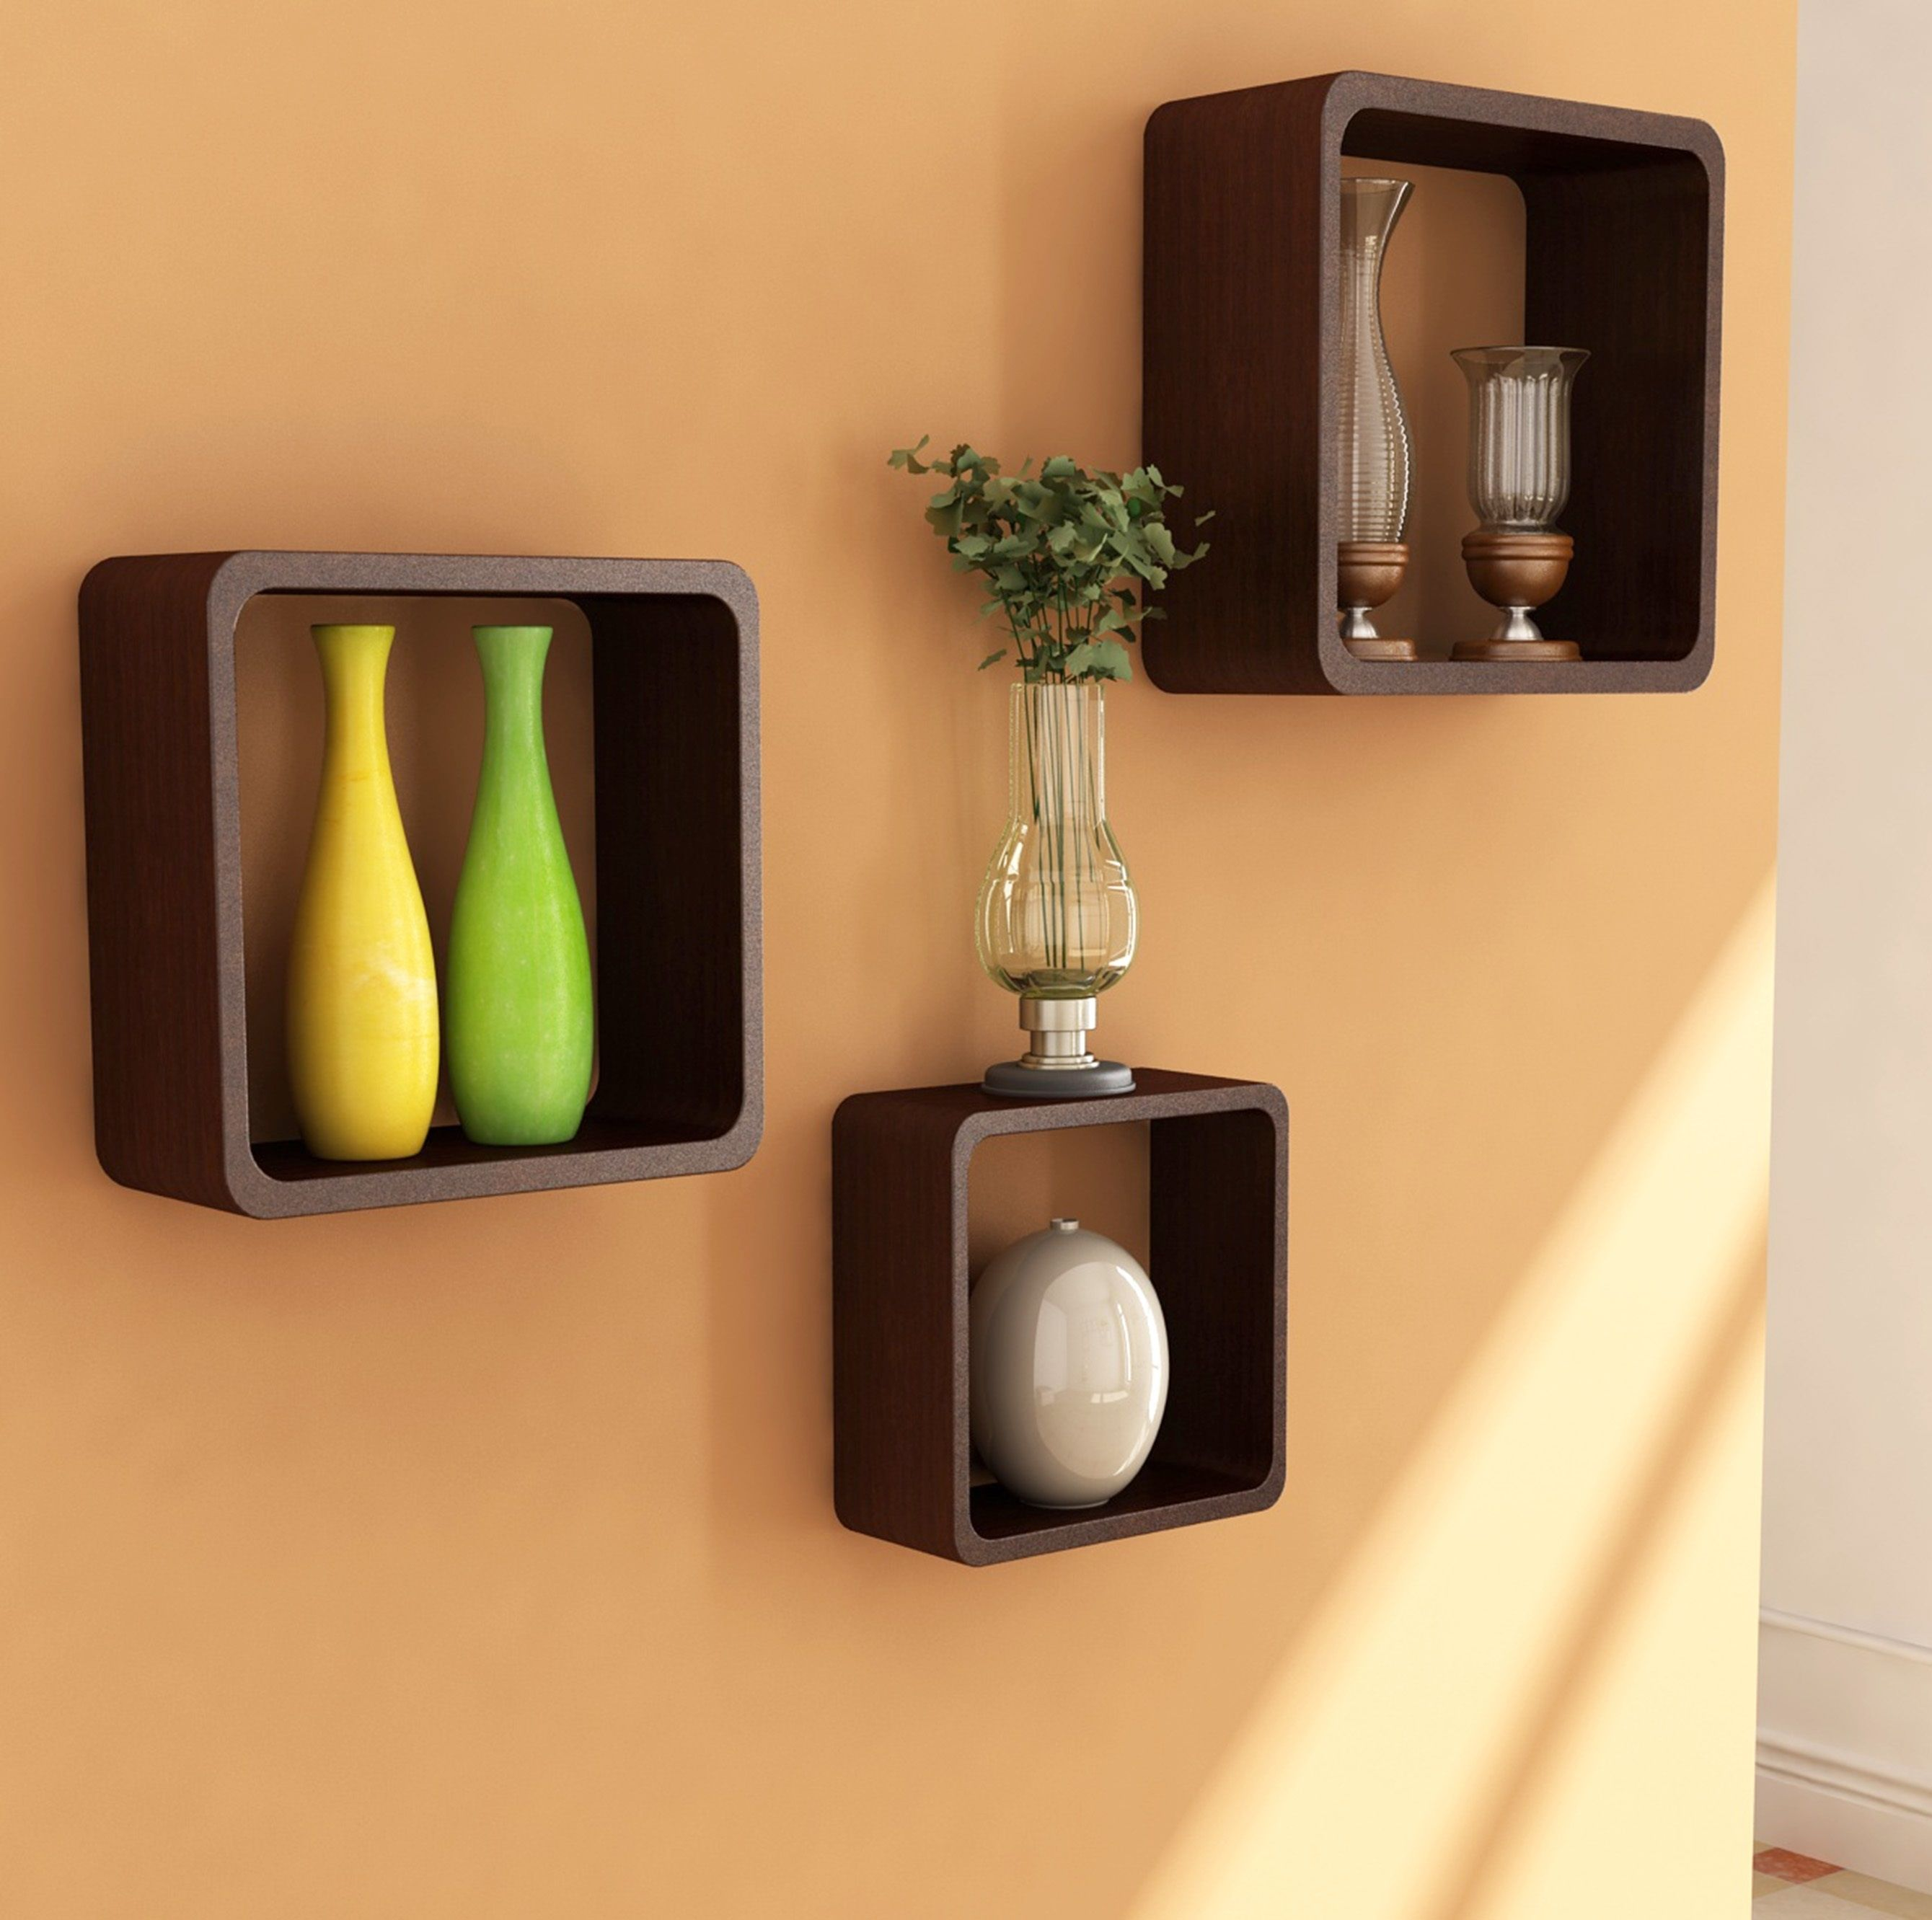 Decorative Wall Cubes Shelves Square Dark Brown Stayed Varnished